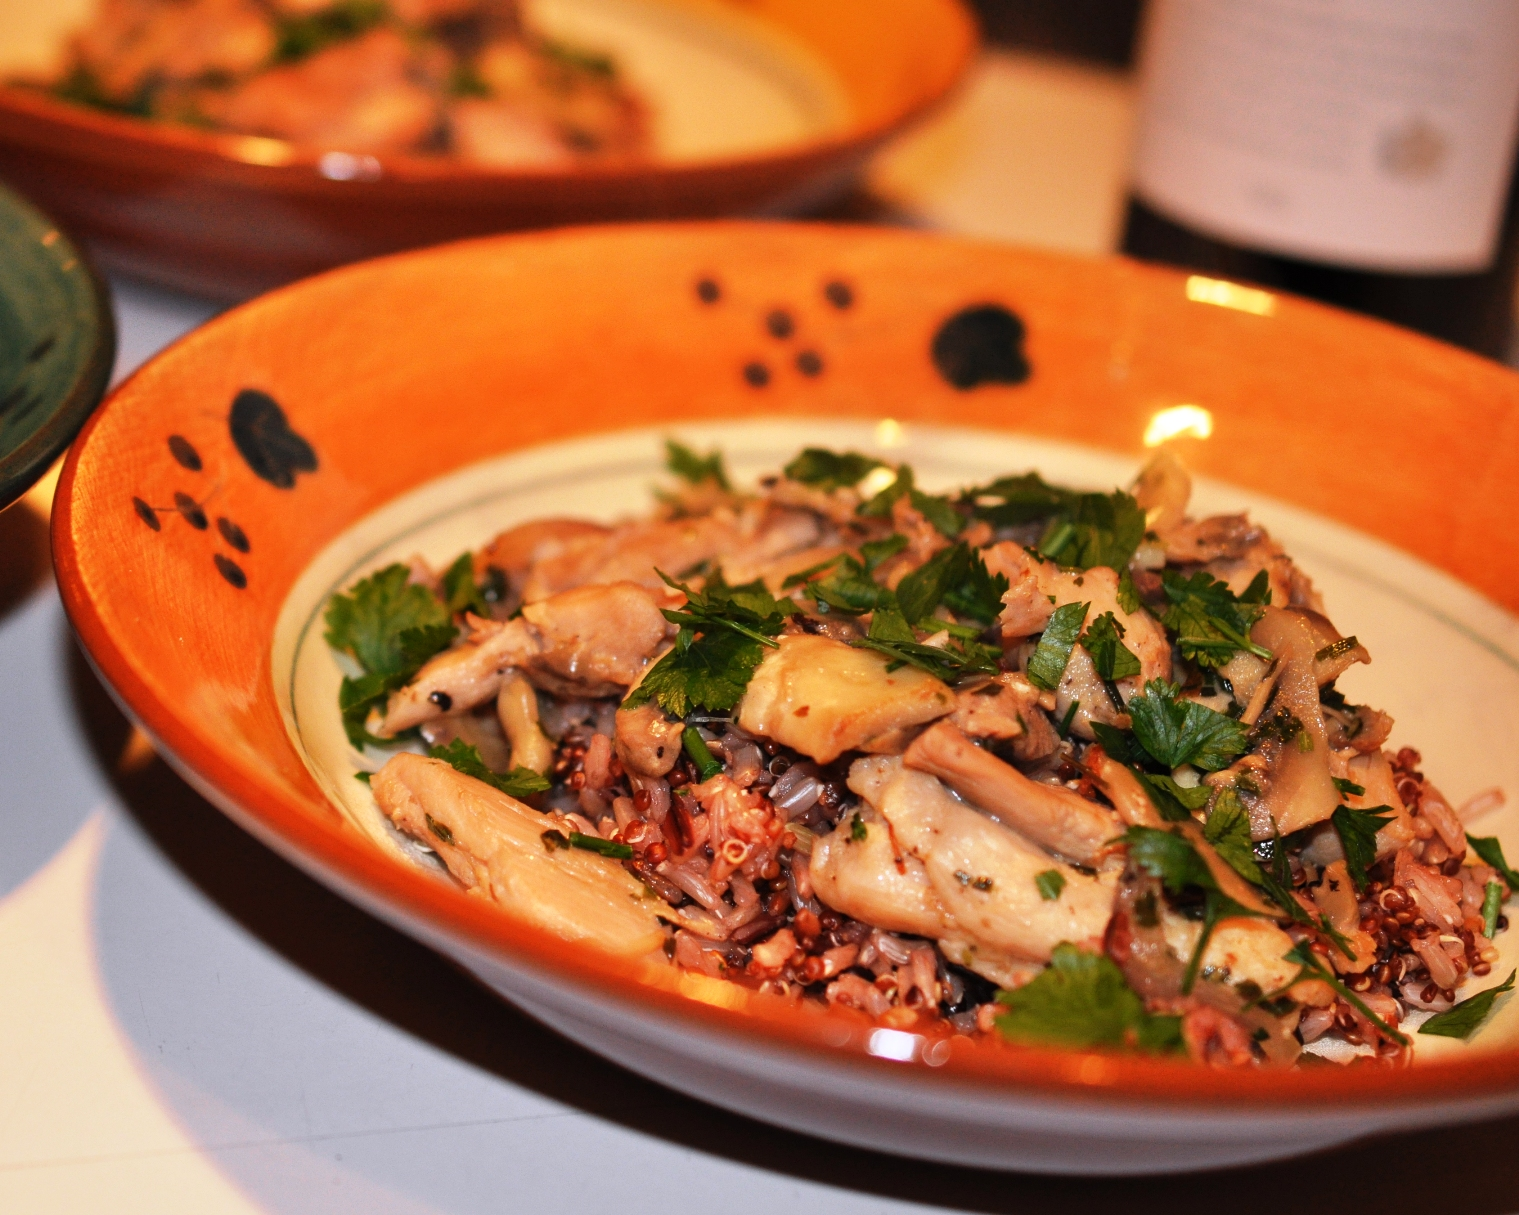 Chicken with mushroom and tarragon